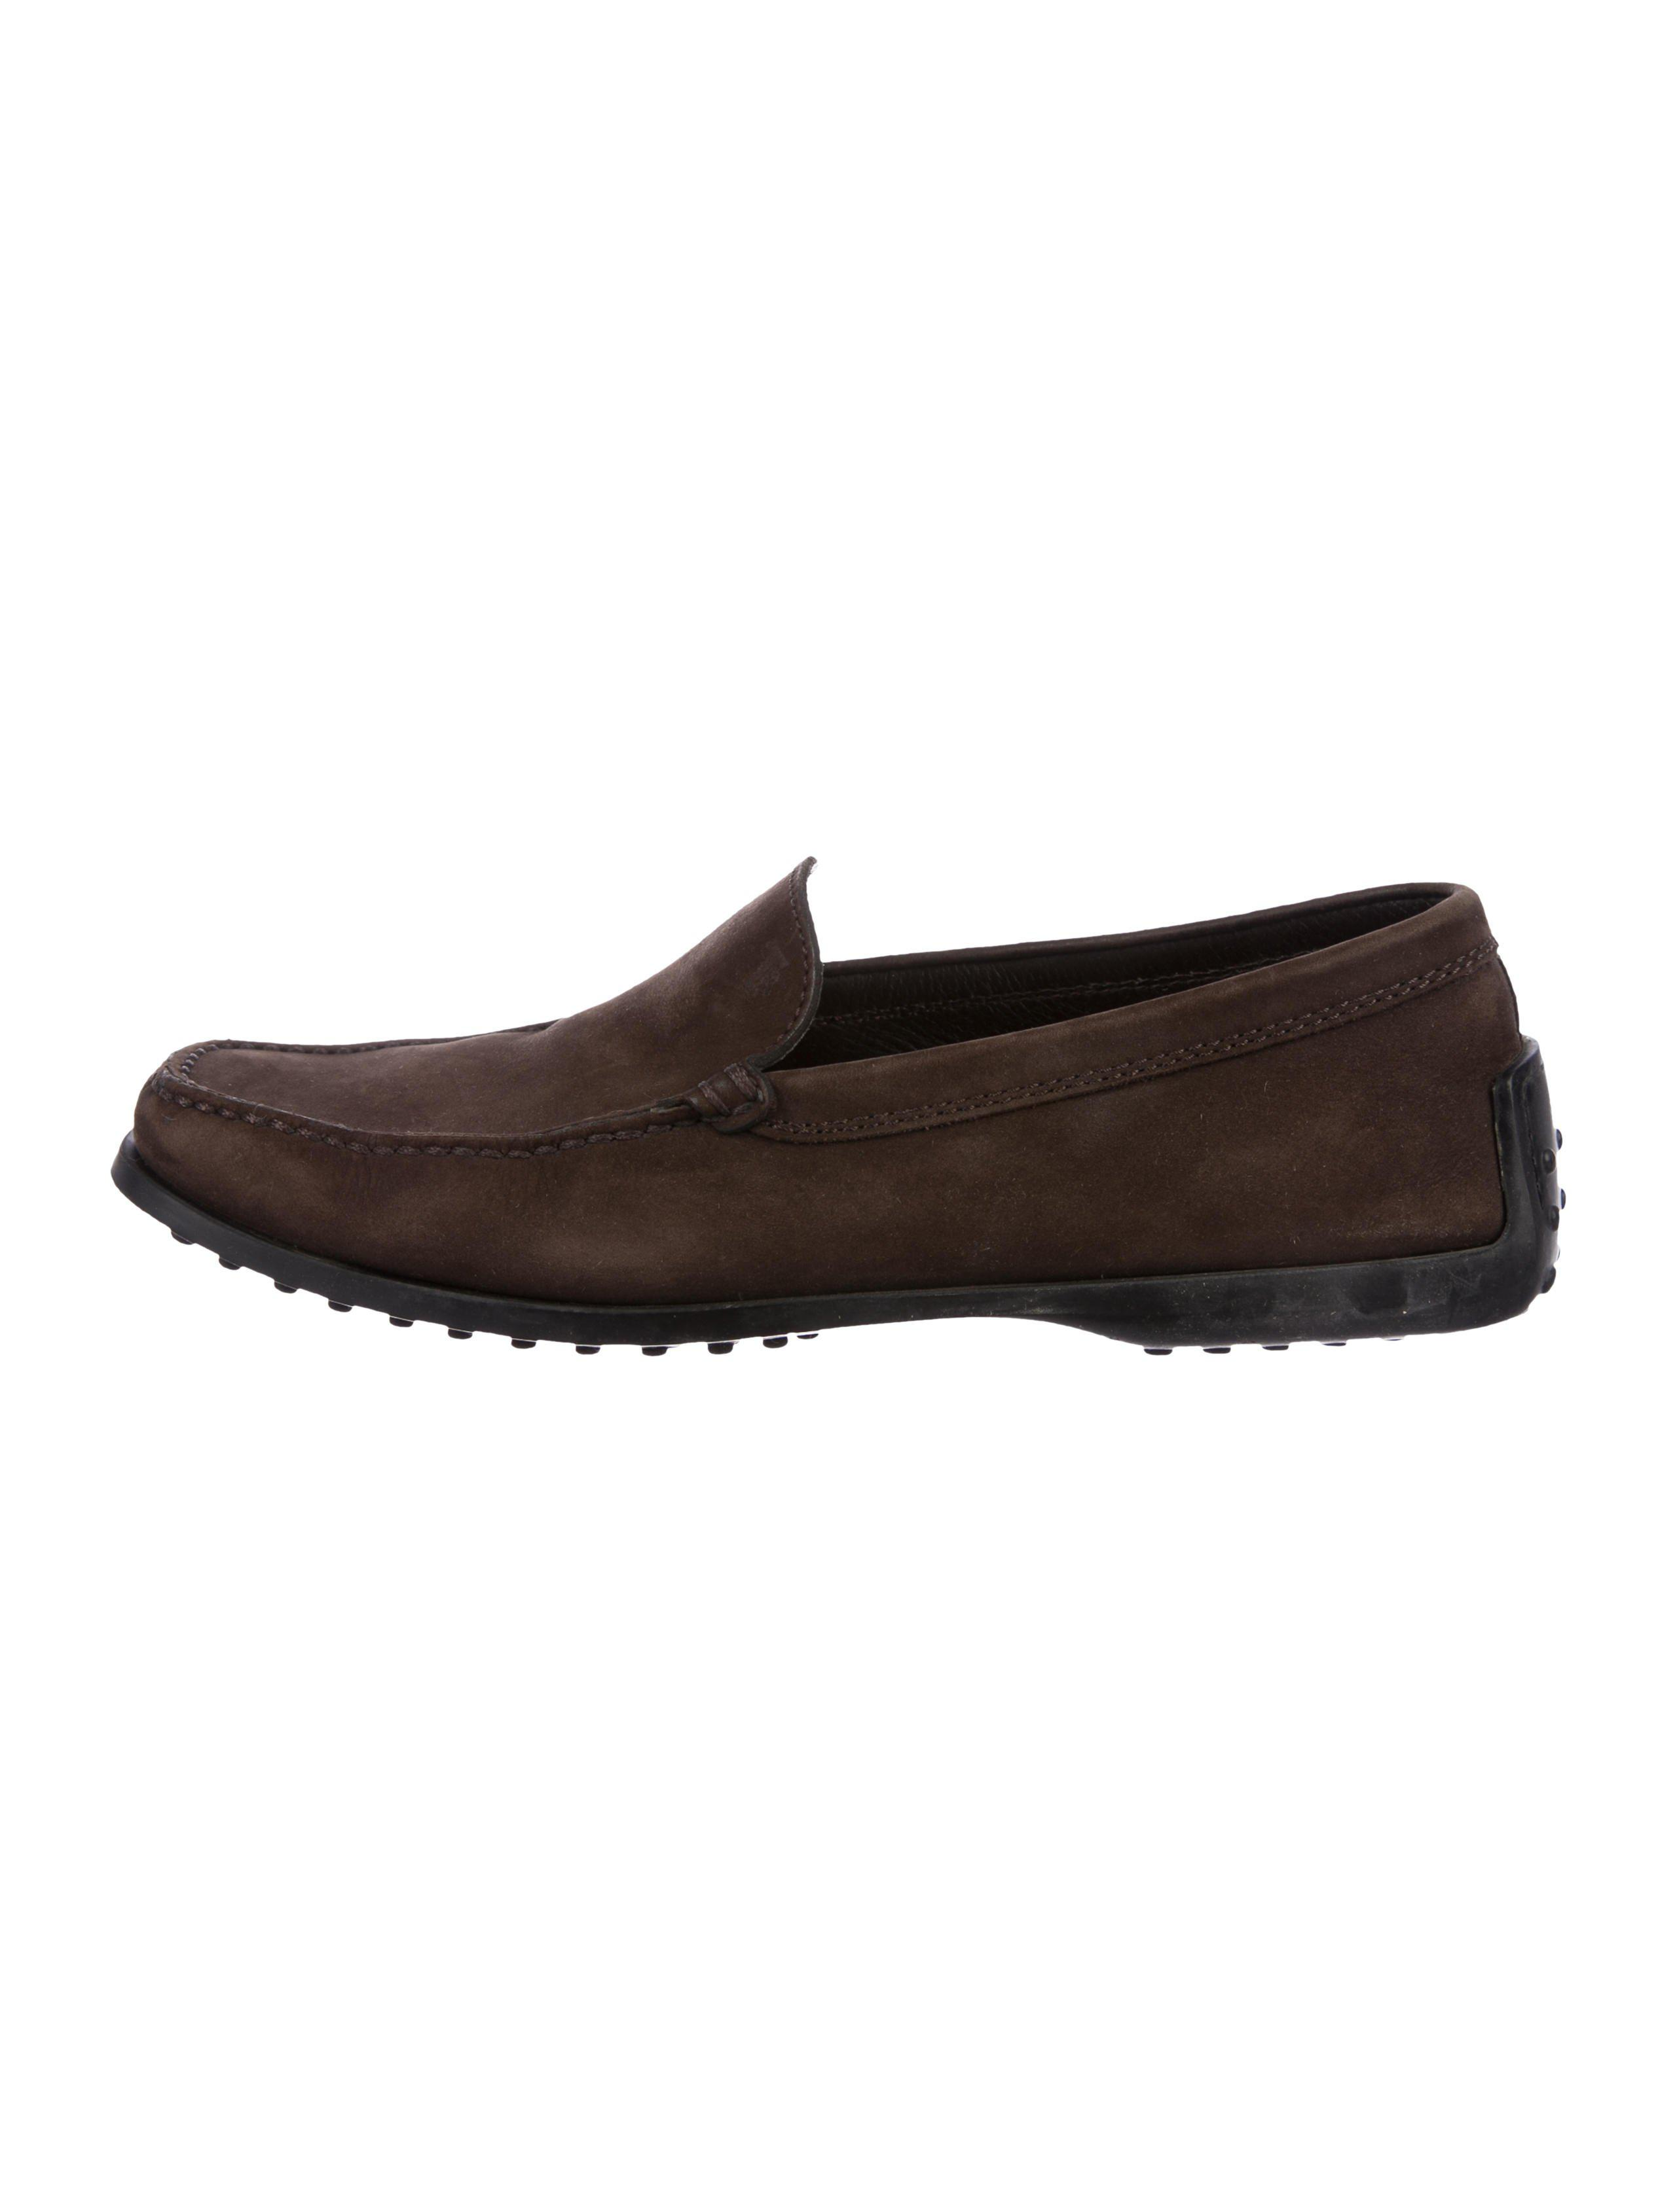 Tod's Round-Toe Driving Loafers footlocker for sale free shipping discount outlet cheap quality eastbay online eVMEhM